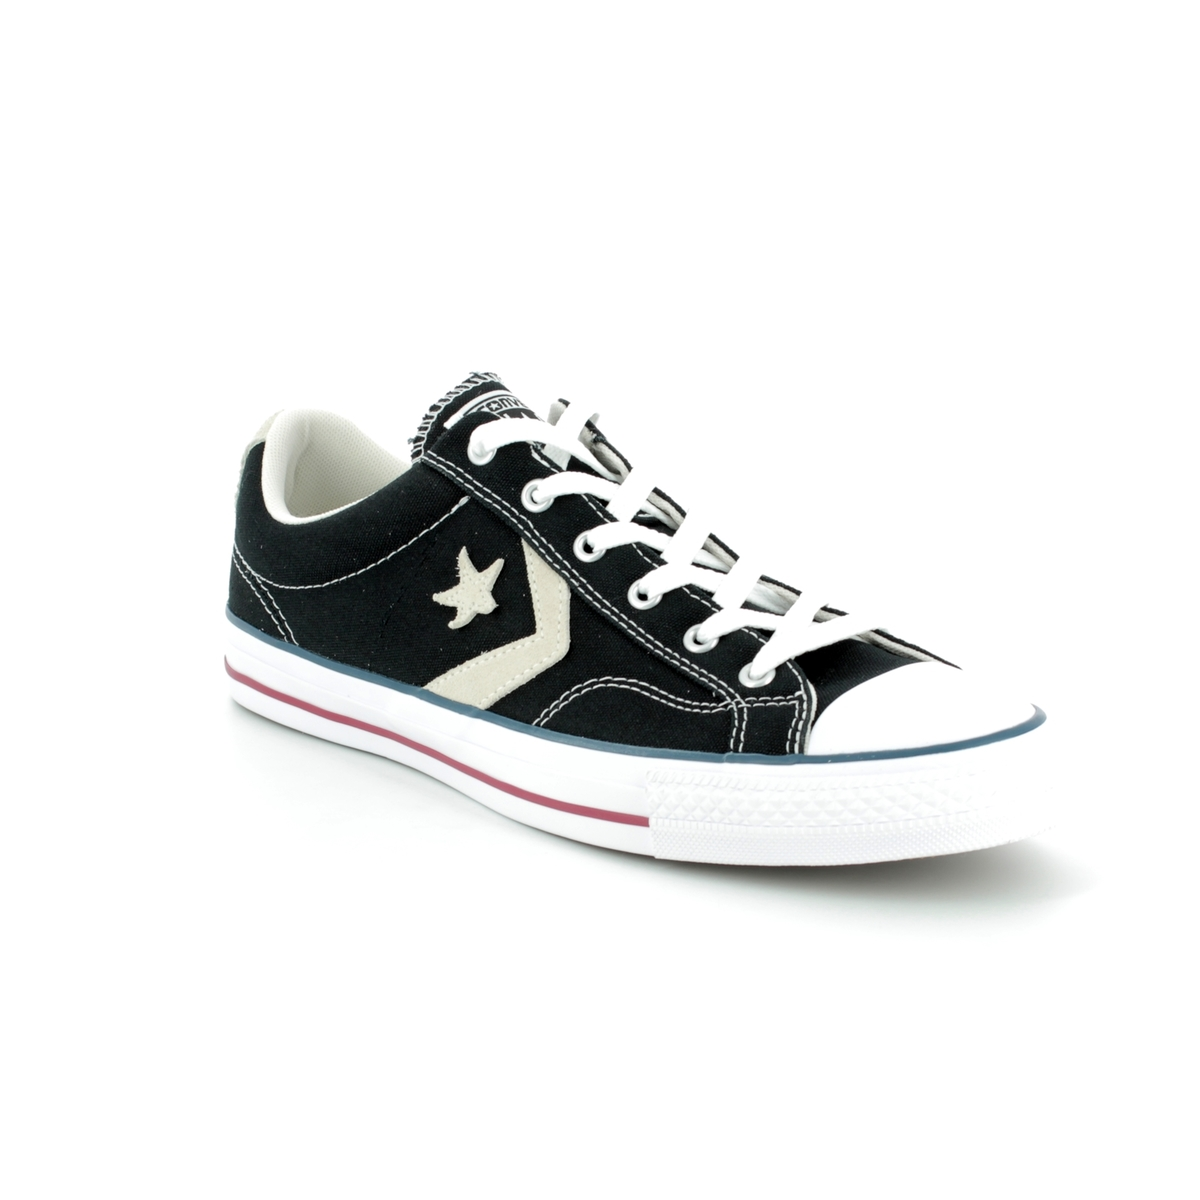 373acd38dc38d6 Converse Trainers - Black - 144145C STAR PLAYER OX